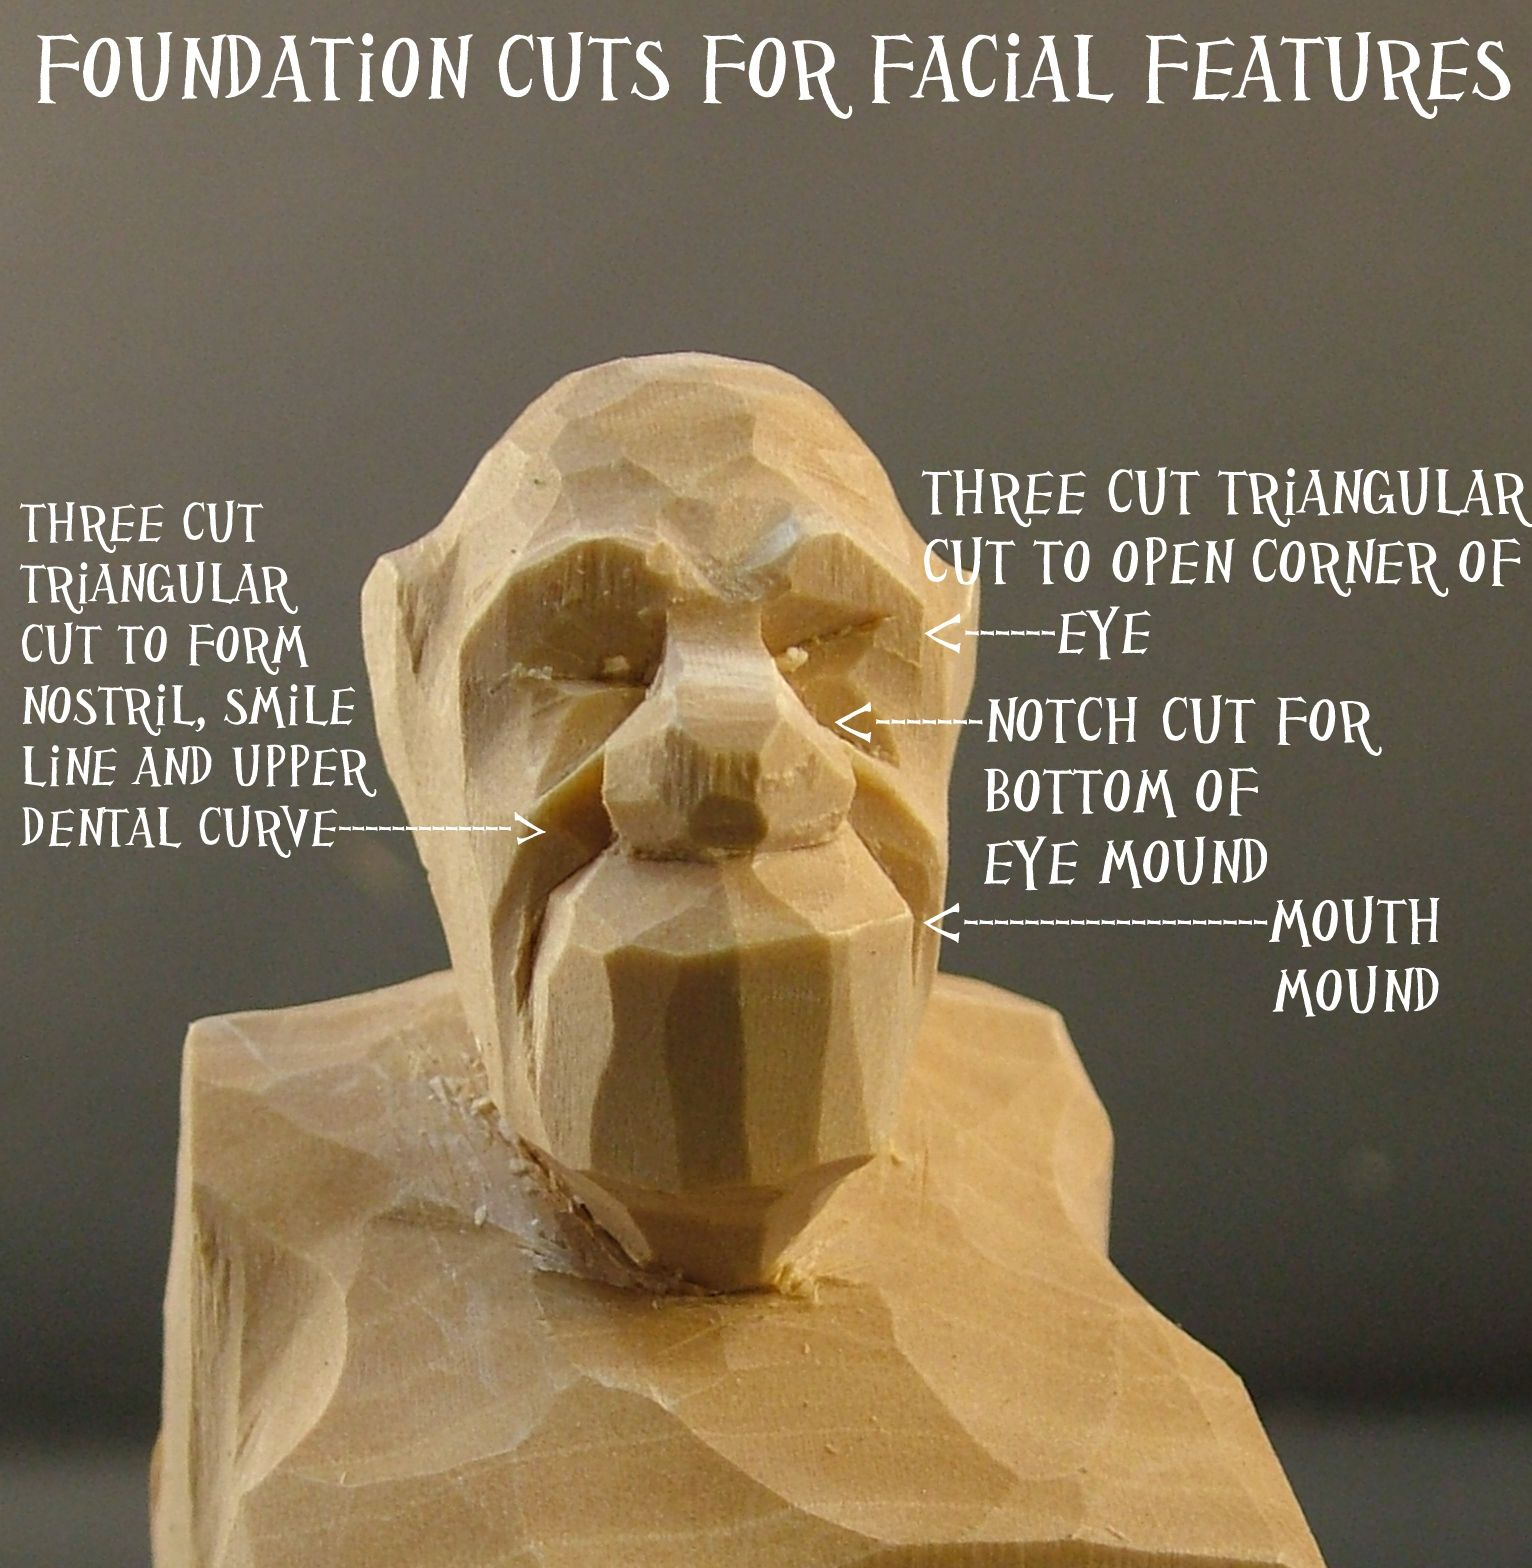 Foundation cuts from donald mertz great source of information on